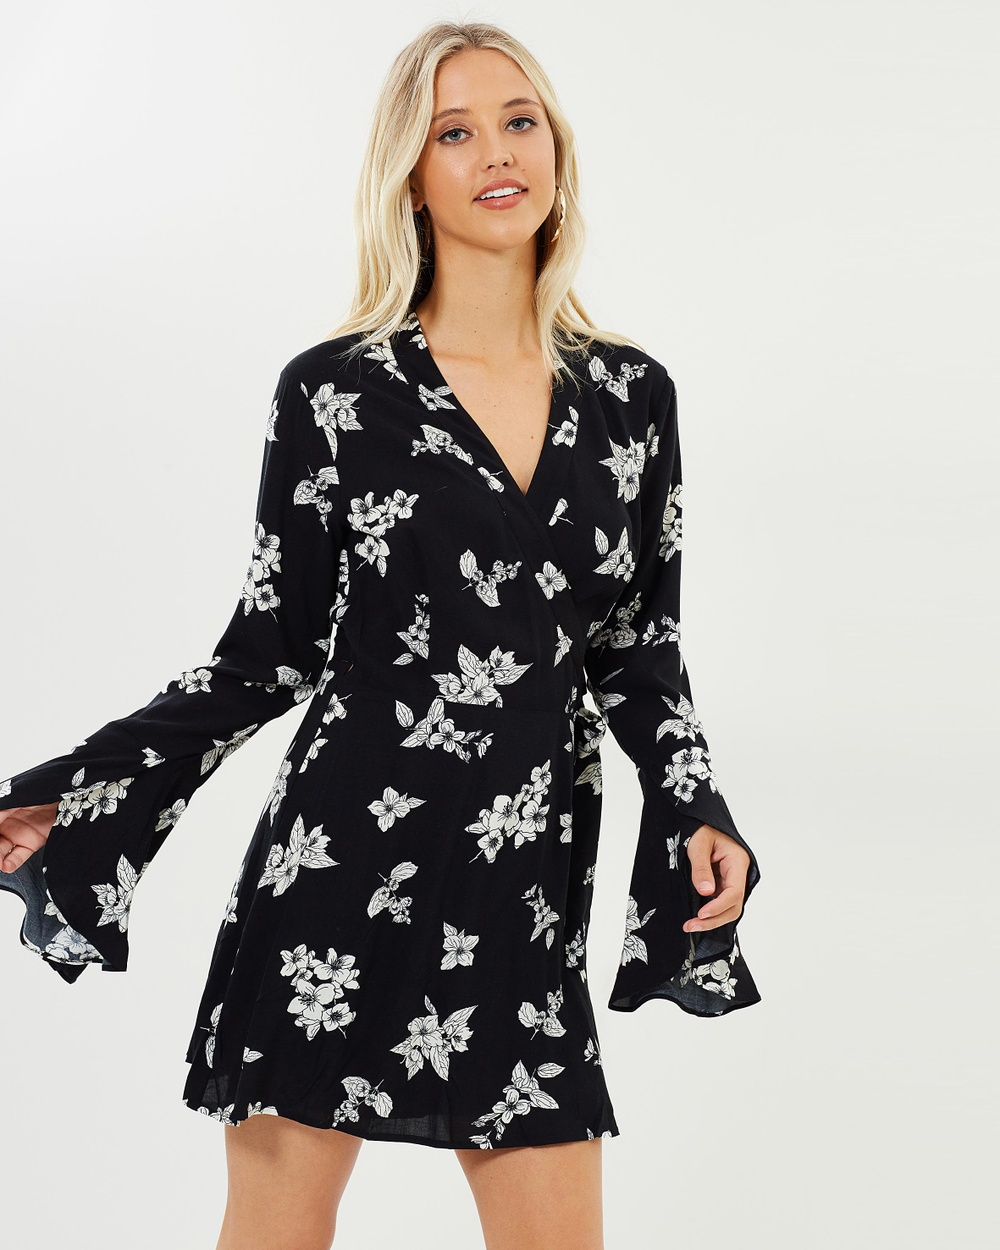 Dazie Persia Jasmine Wrap Dress Printed Dresses Black Base Floral Persia Jasmine Wrap Dress